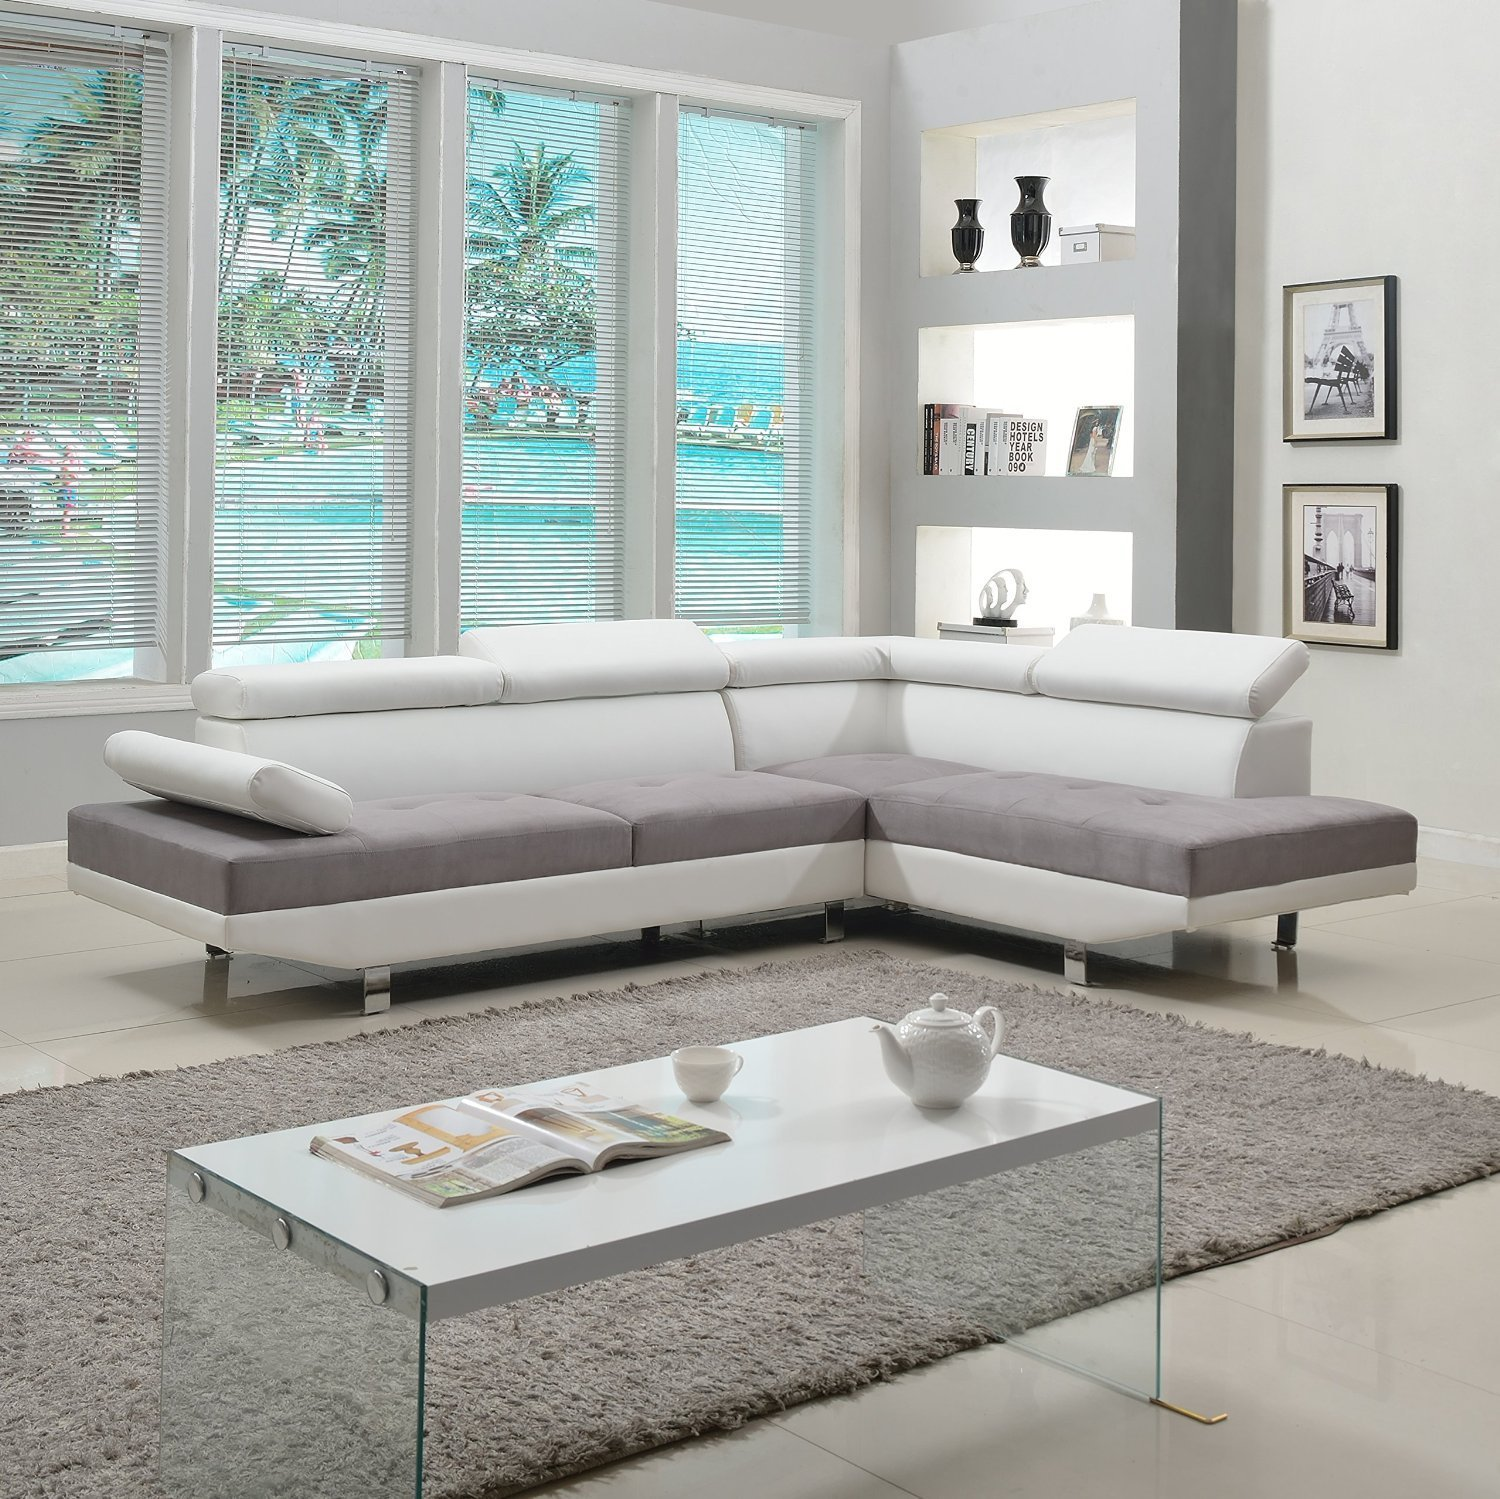 Modern living room furniture review find the best one for Best living room furniture reviews